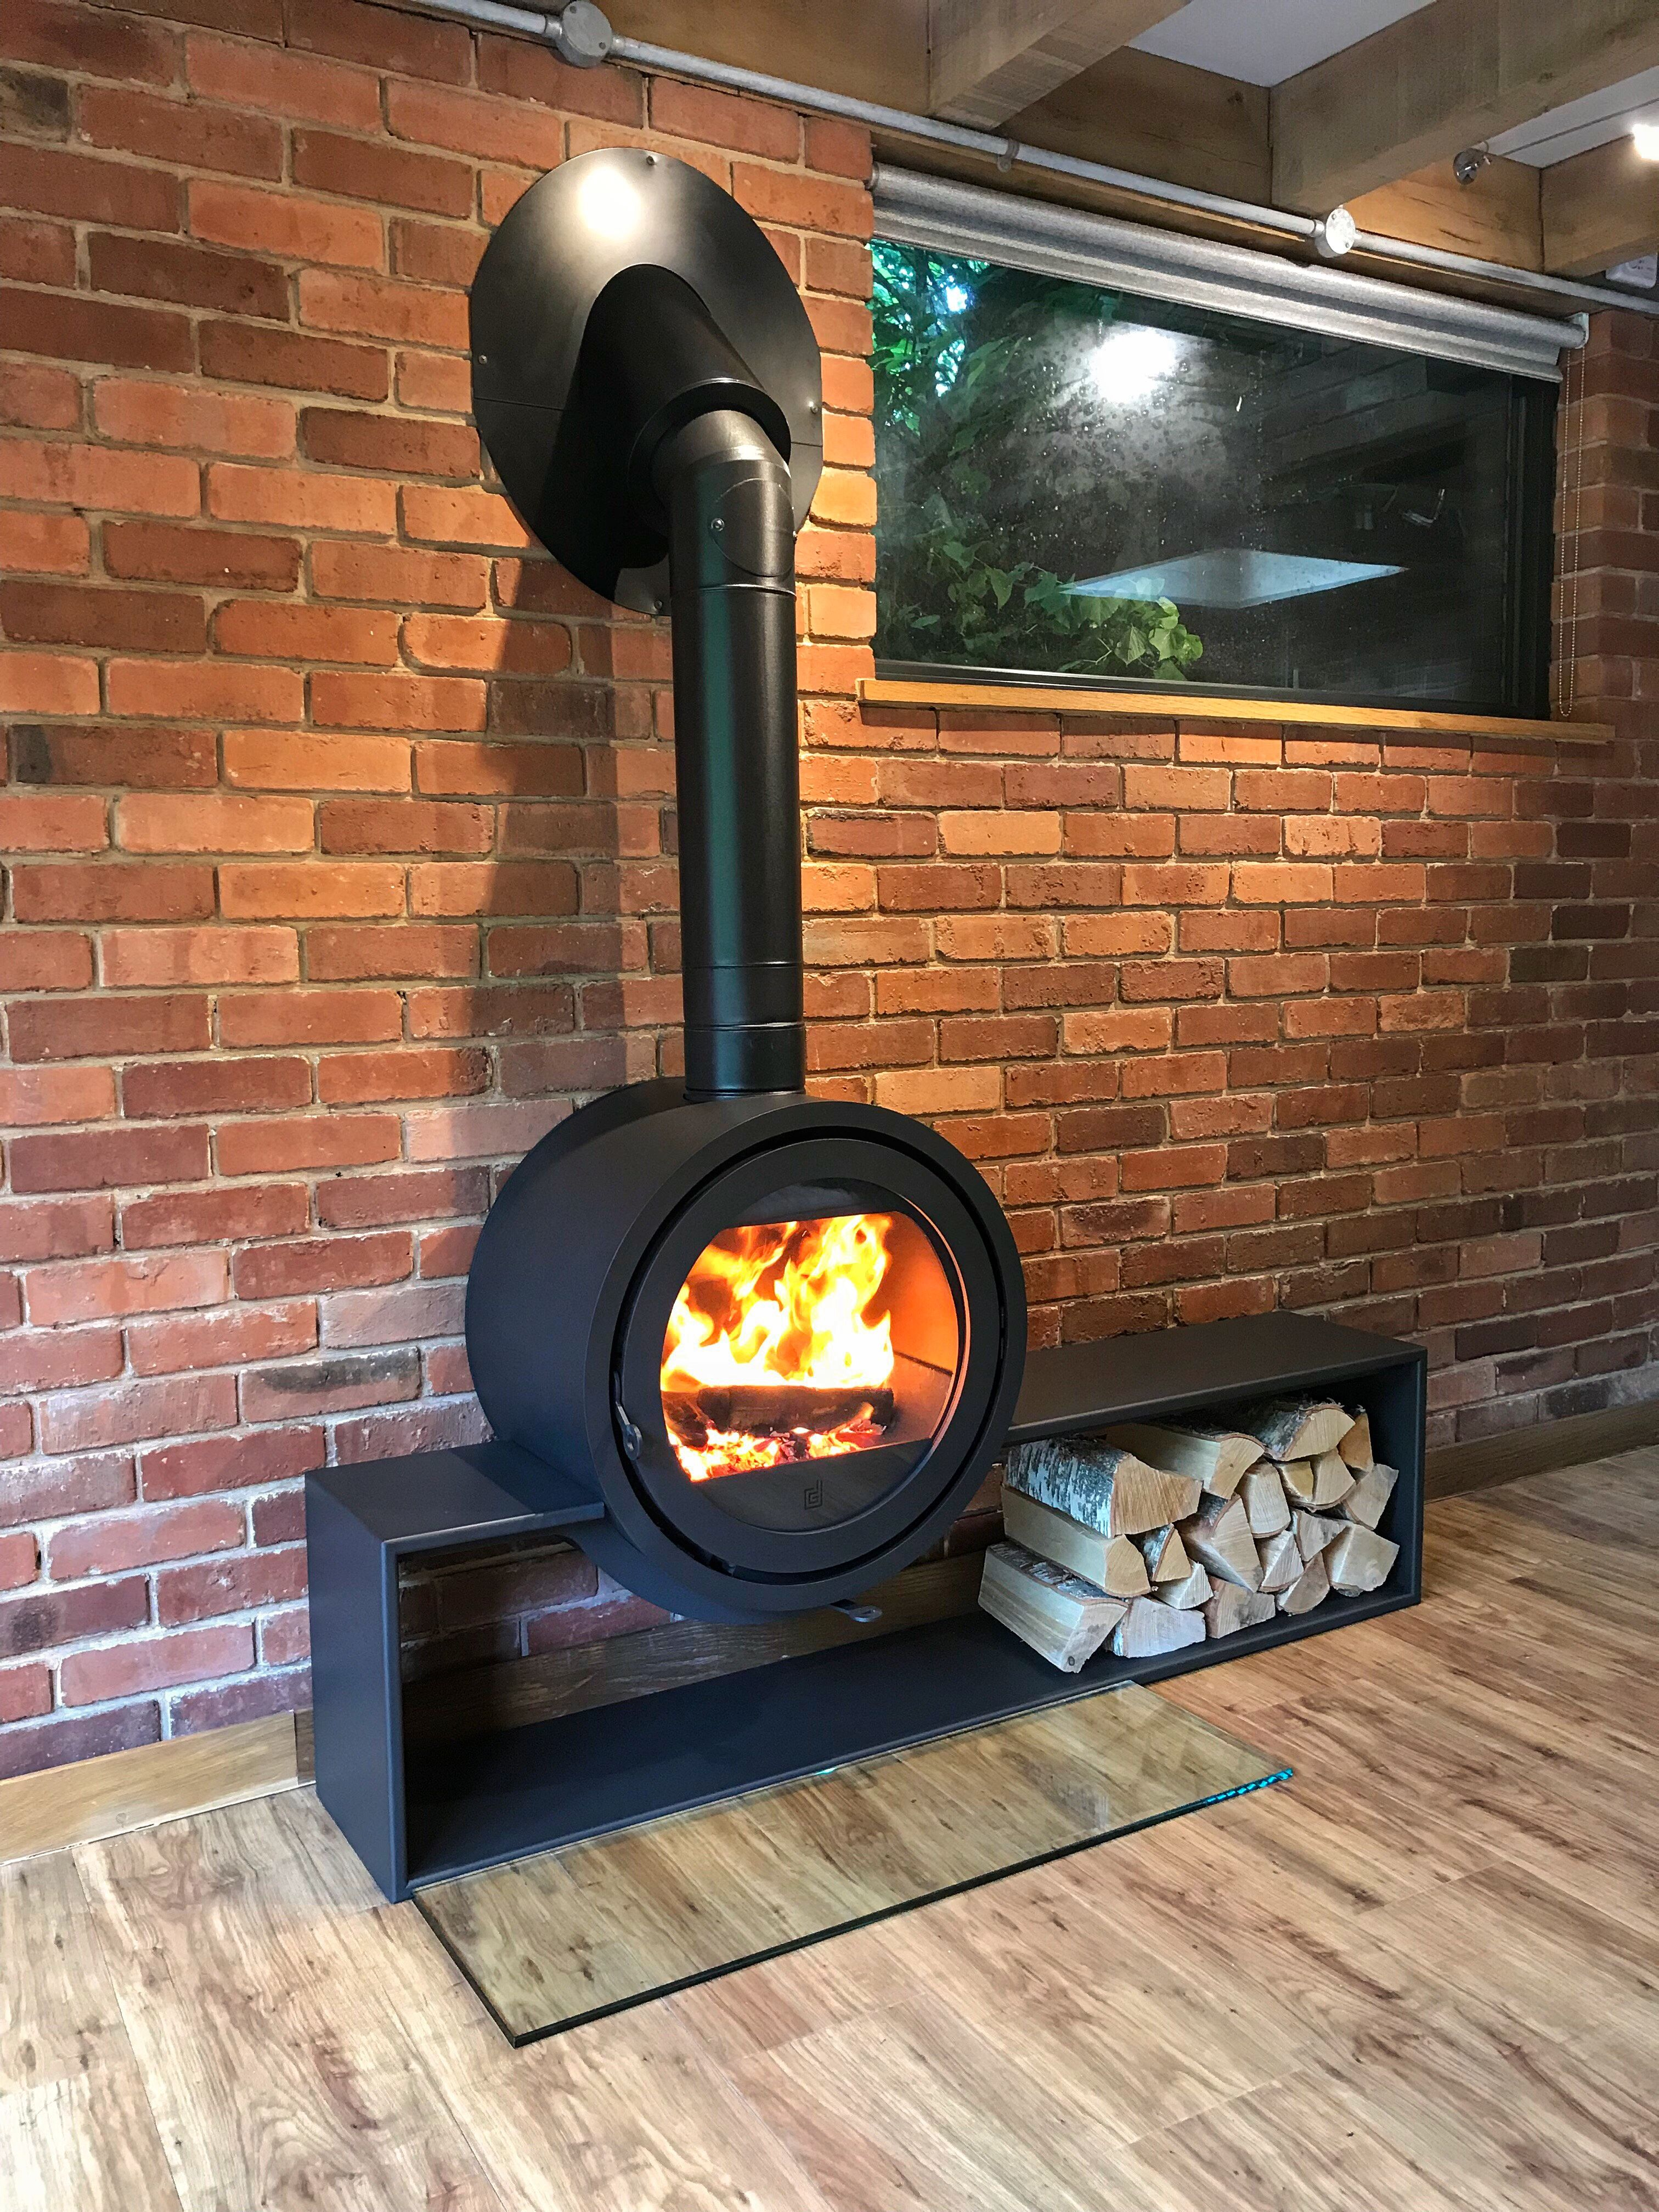 Another Happy Customer The Dik Geurts Odin Range Has Been Designed With Style Efficiency And Ease Of Use In Mind The Distinctive Cir Wood Burning Stove